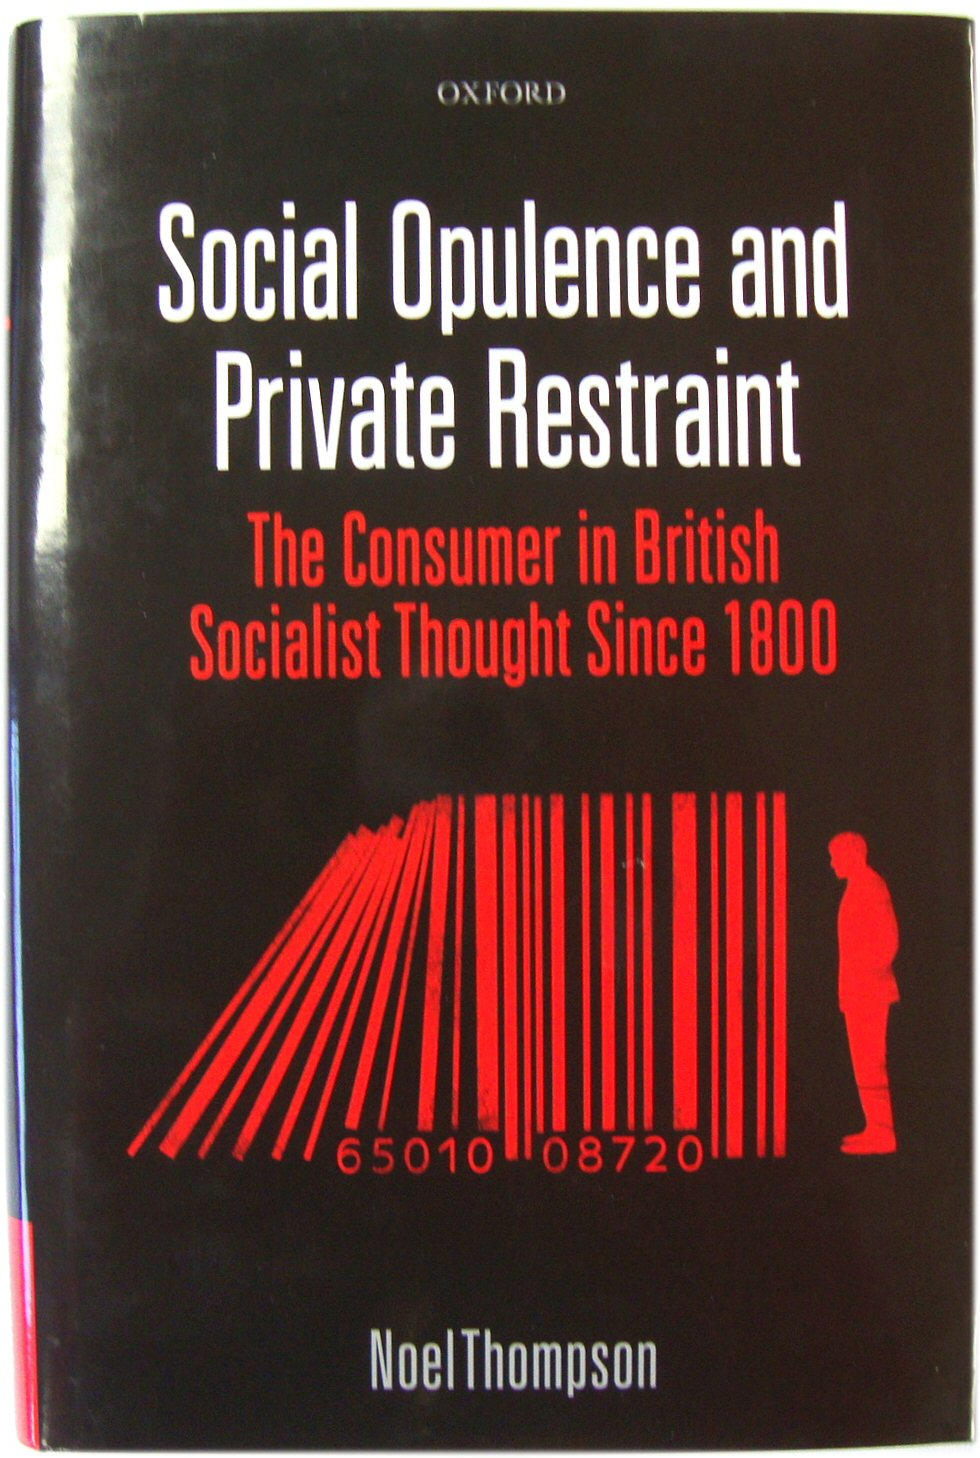 Image for Social Opulence and Private Restraint: The Consumer in British Socialist Thought Since 1800